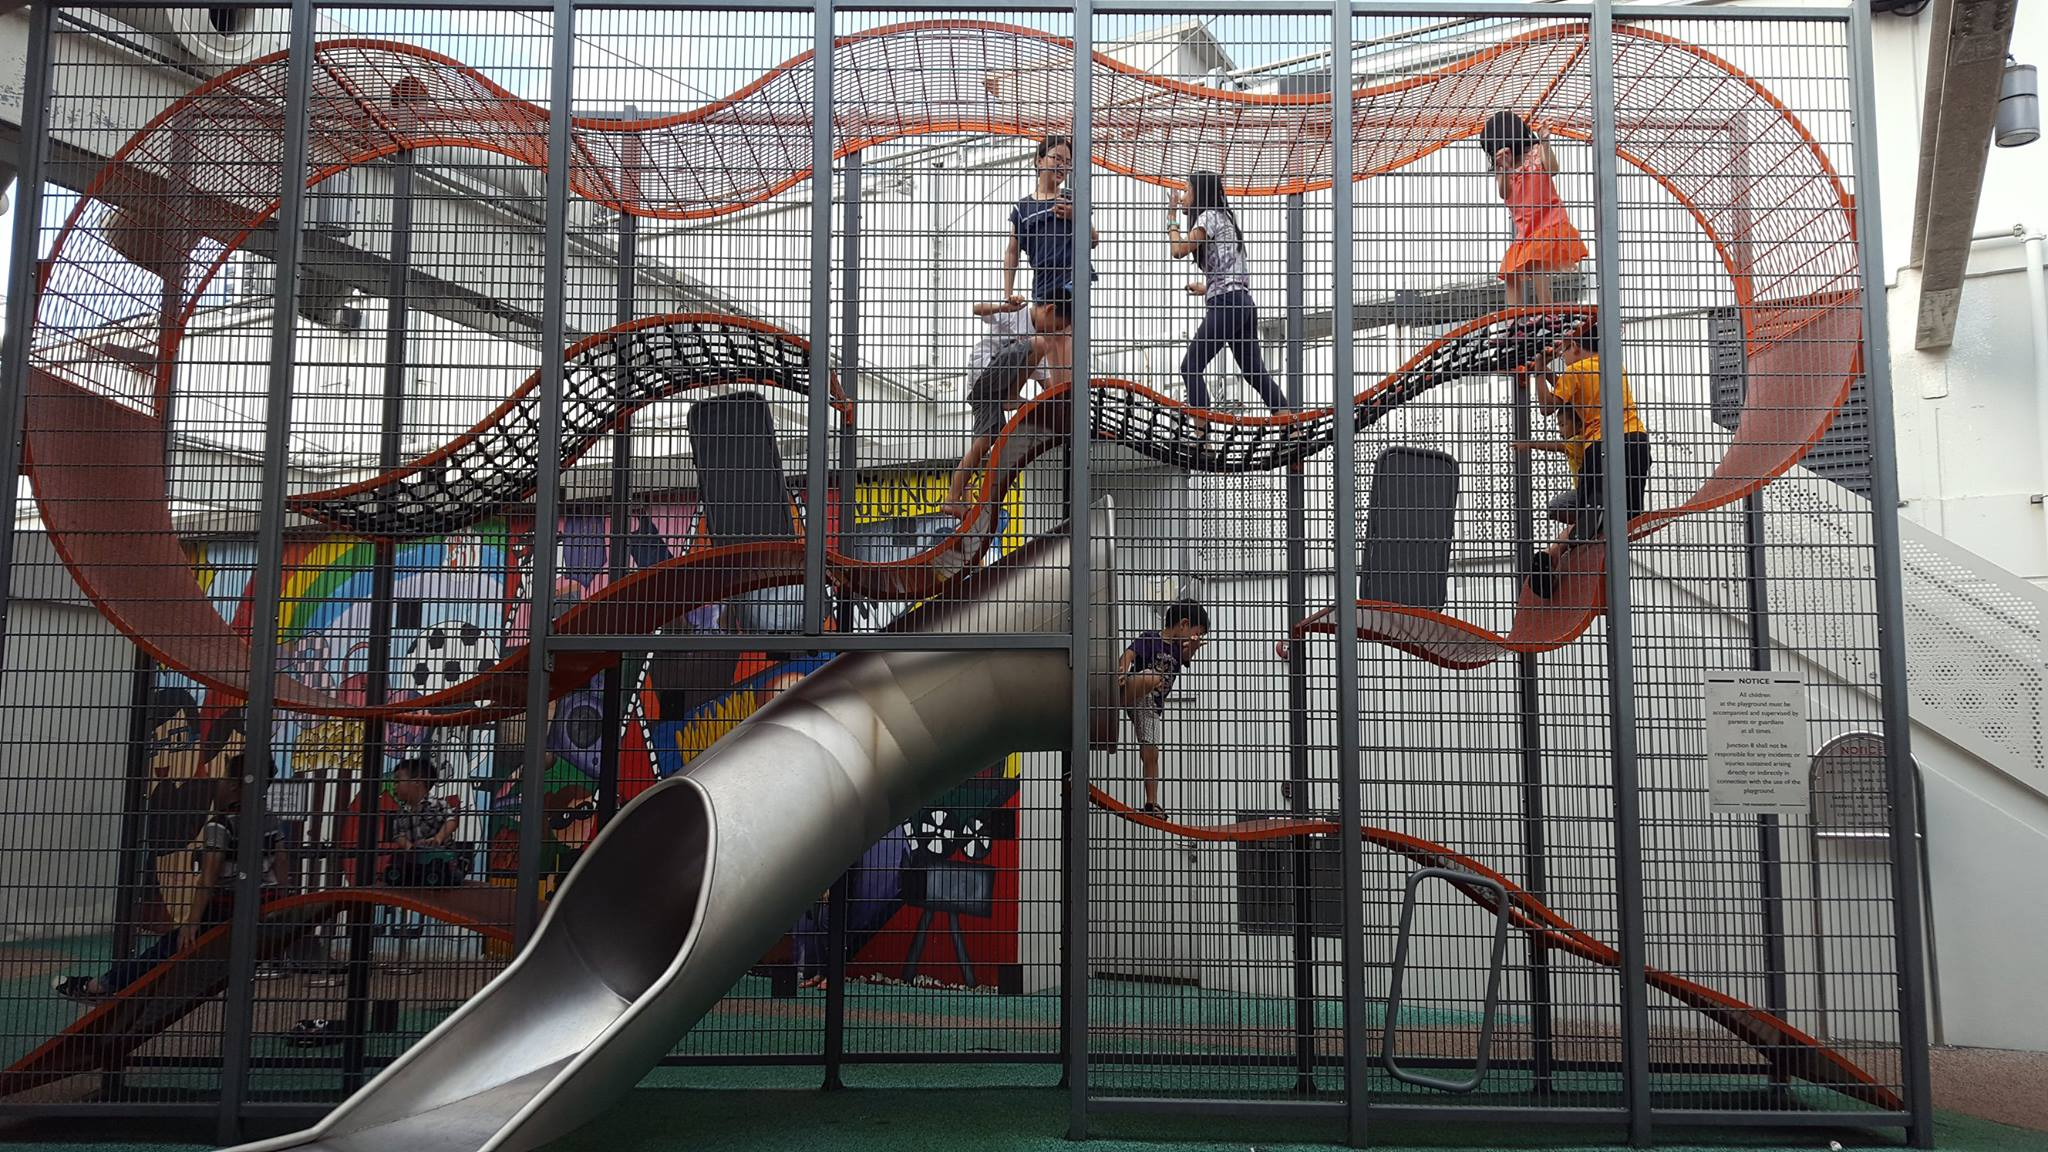 free playgrounds in mall - junction 8 vertical playground